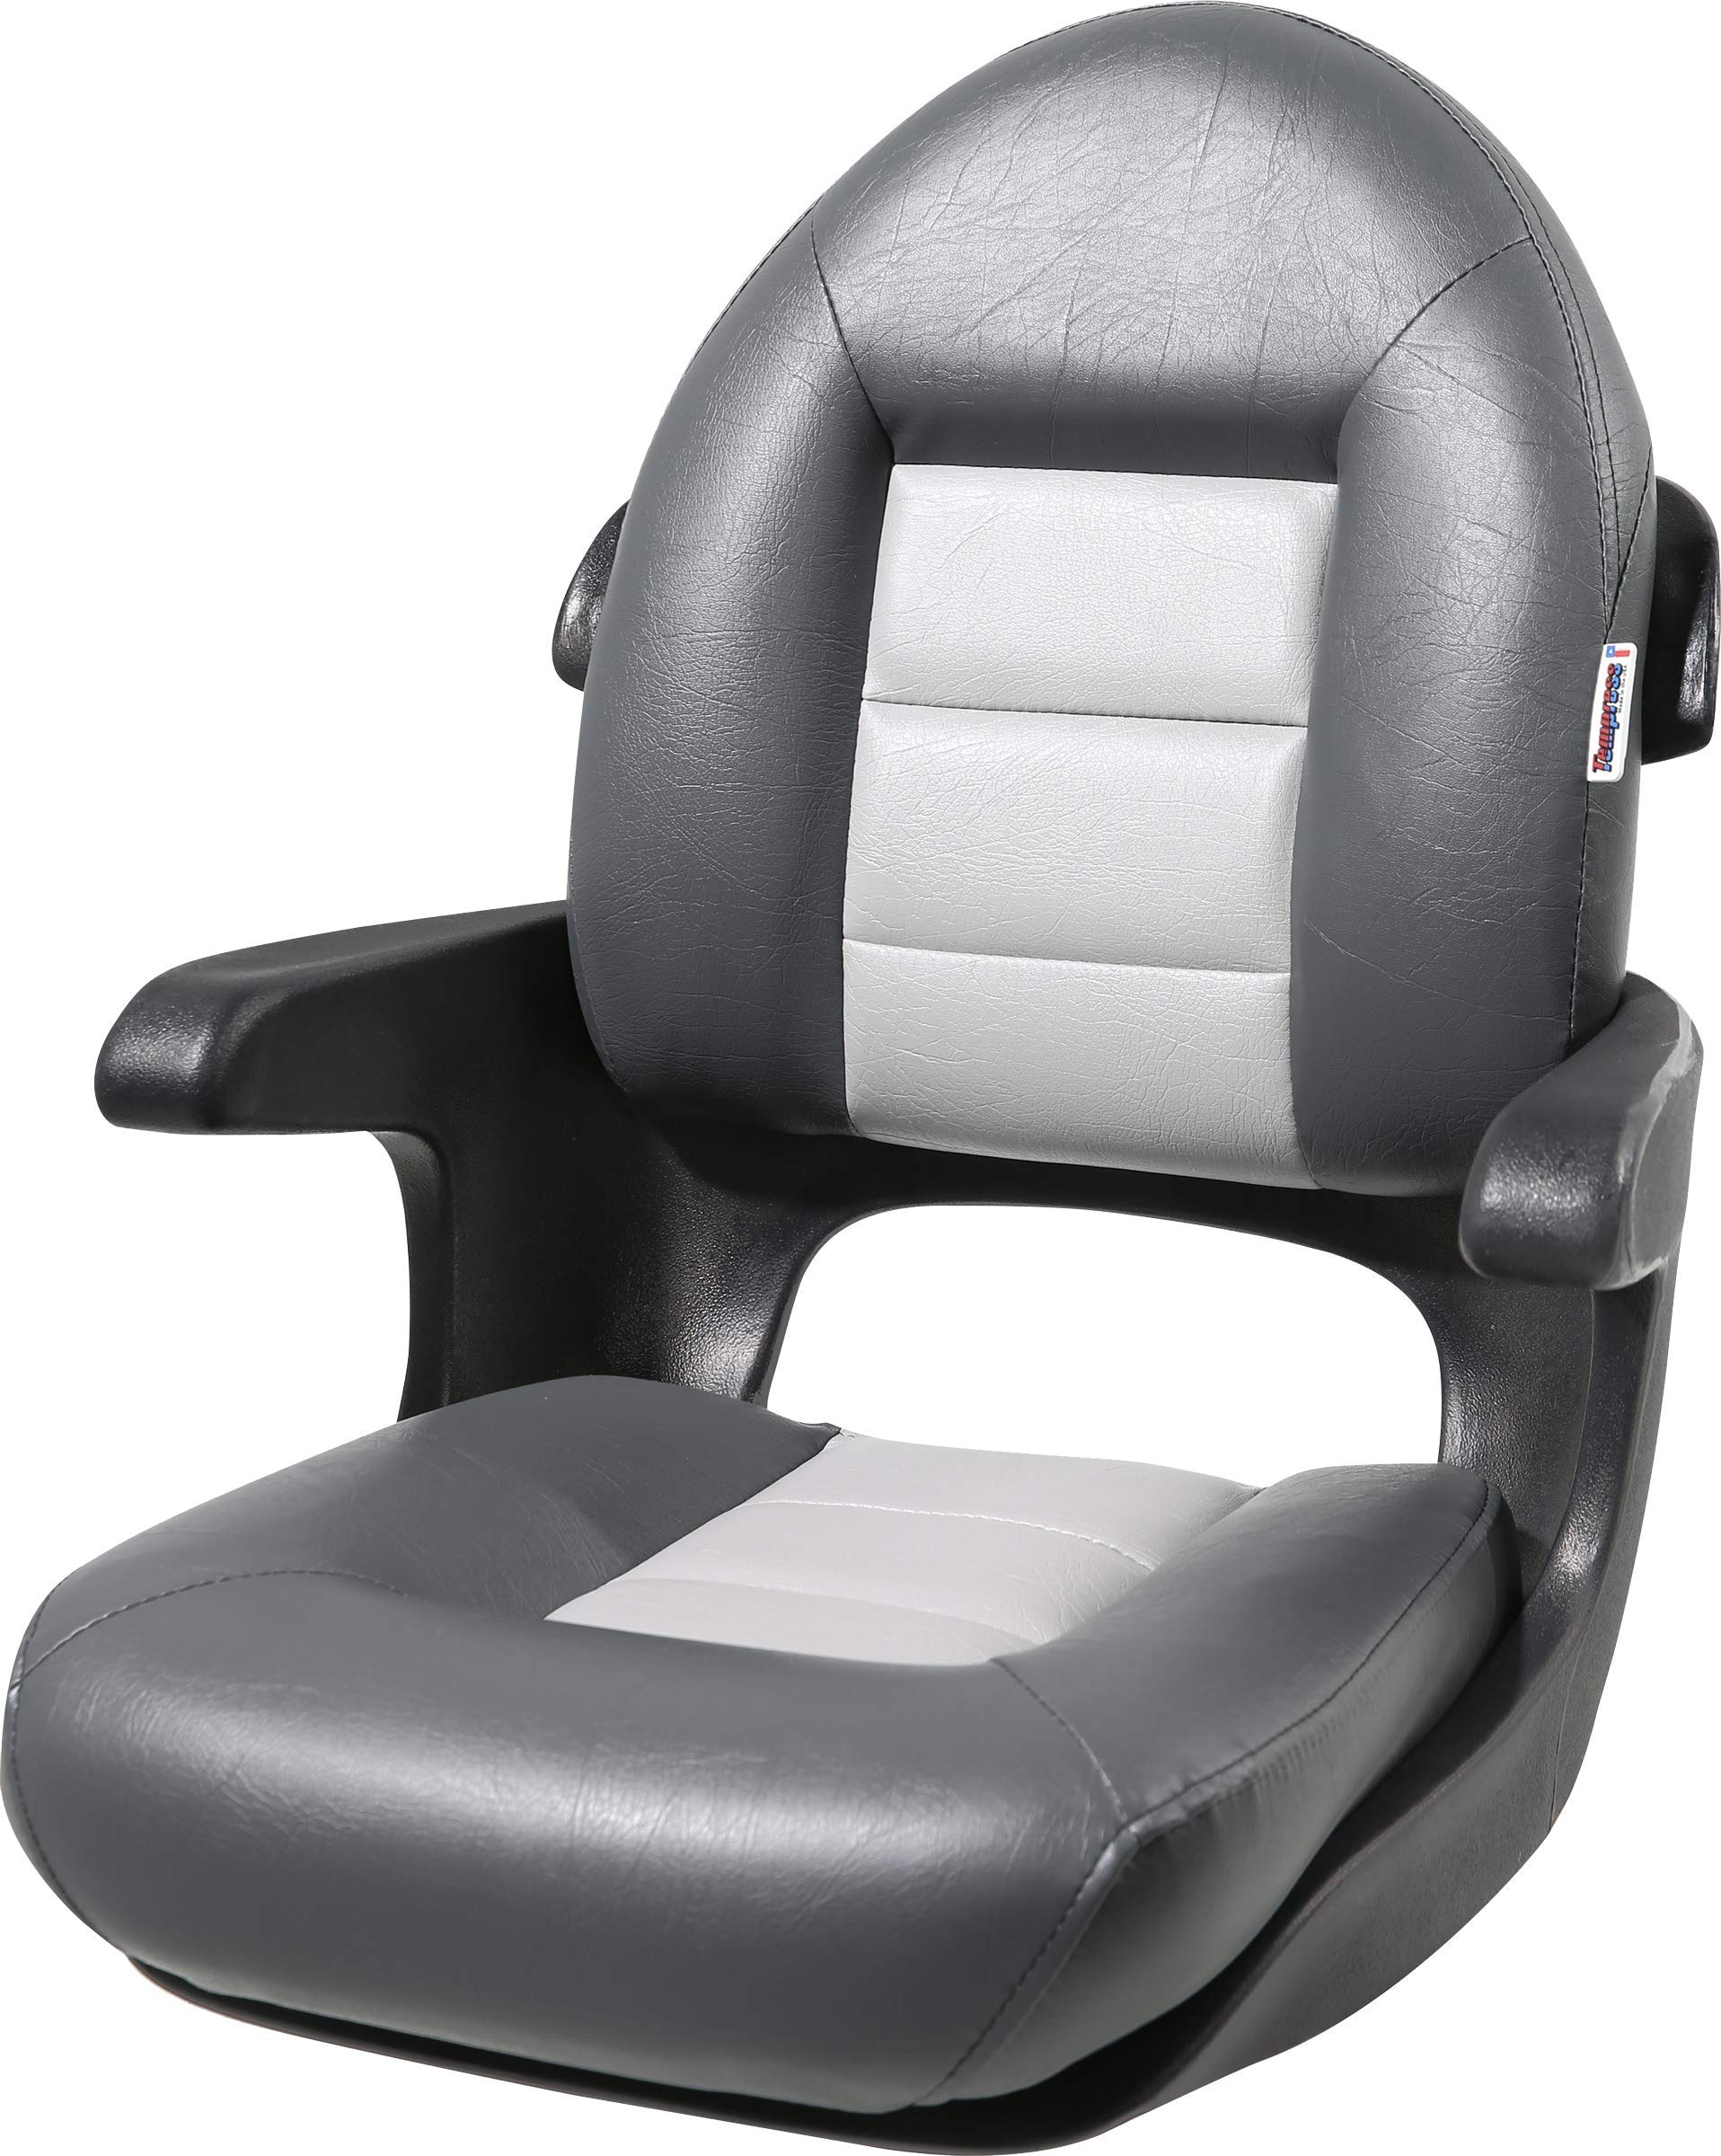 Tempress Elite High Back Helm Seat, Charcoal/Gray by Tempress